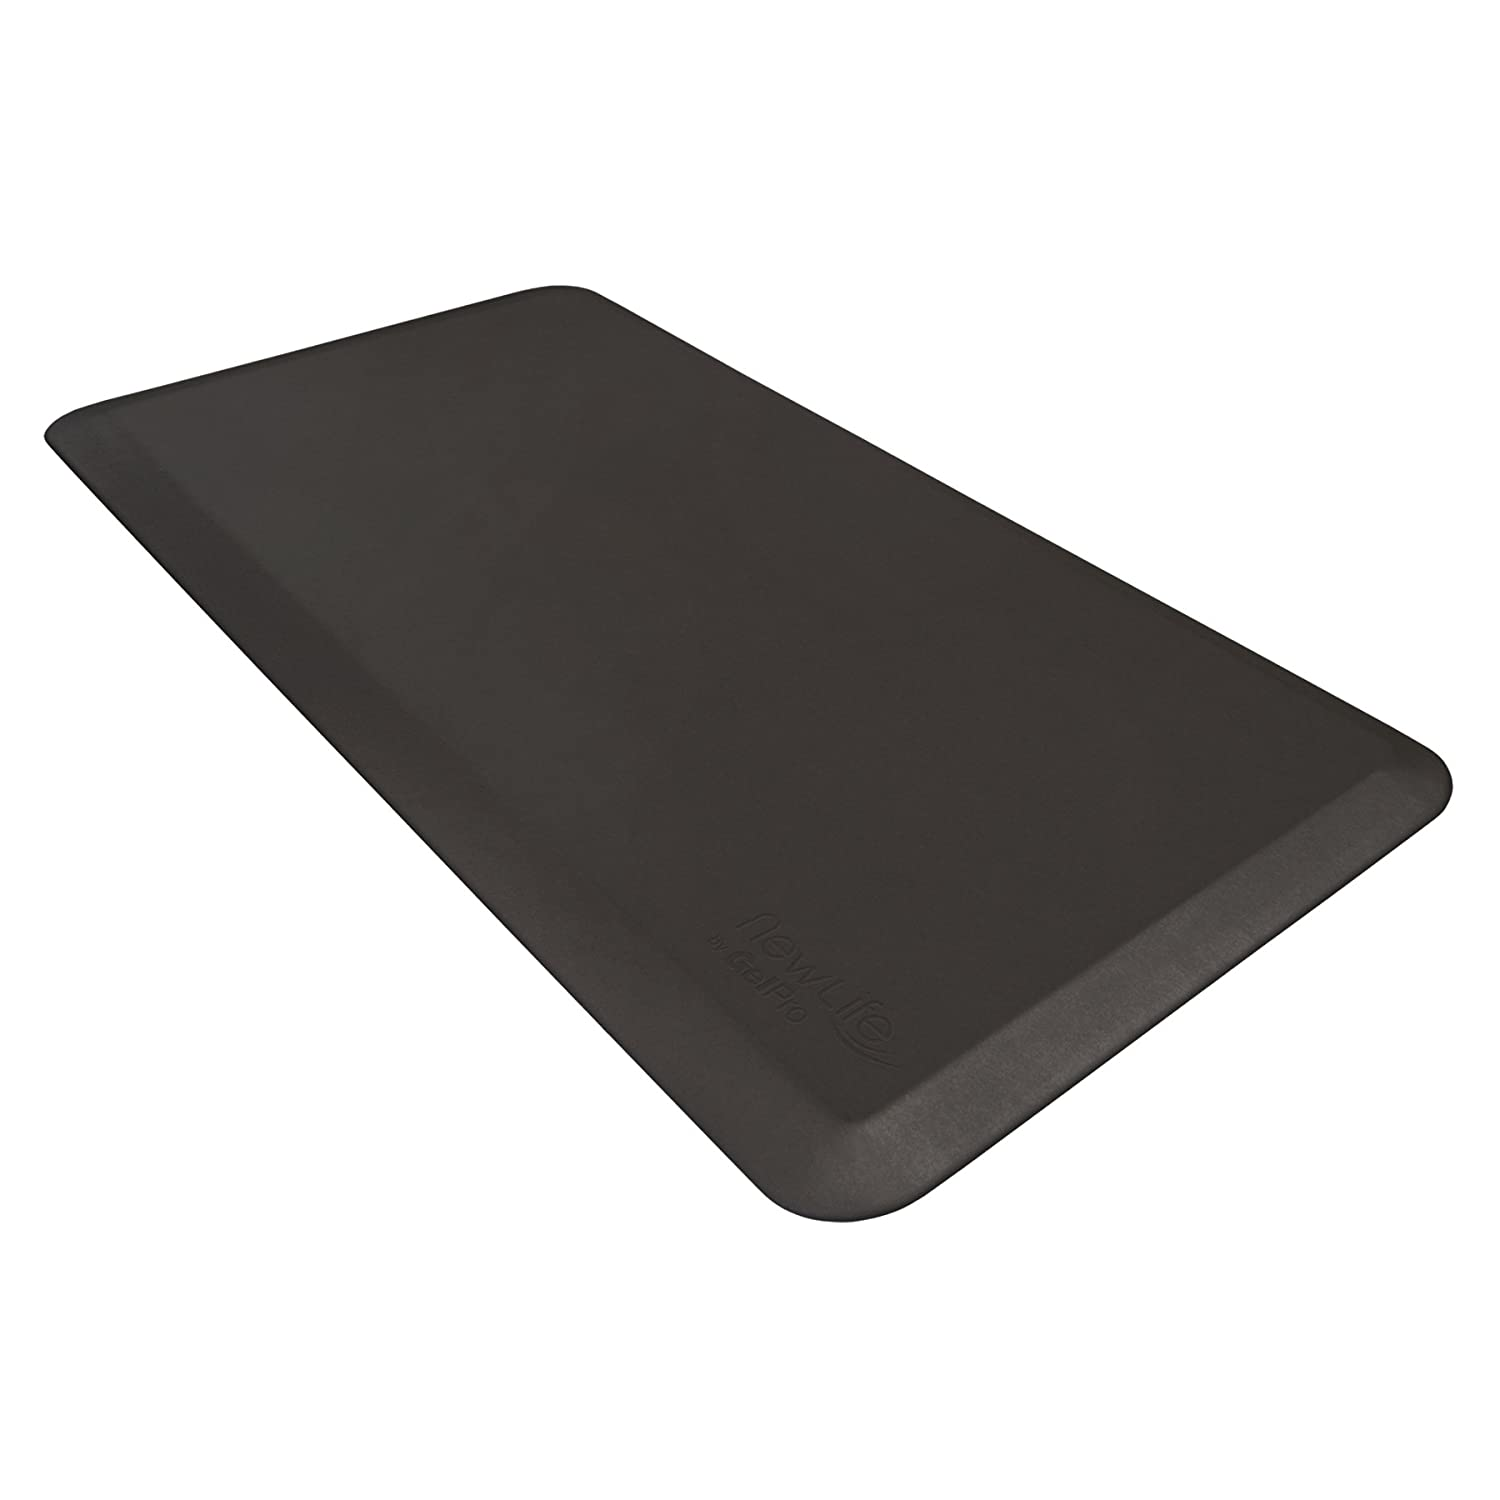 NewLife Eco-Pro by GelPro Stand Desk and Work Floor Mat, 20x48 Black by NewLife by GelPro   B008N6WW22